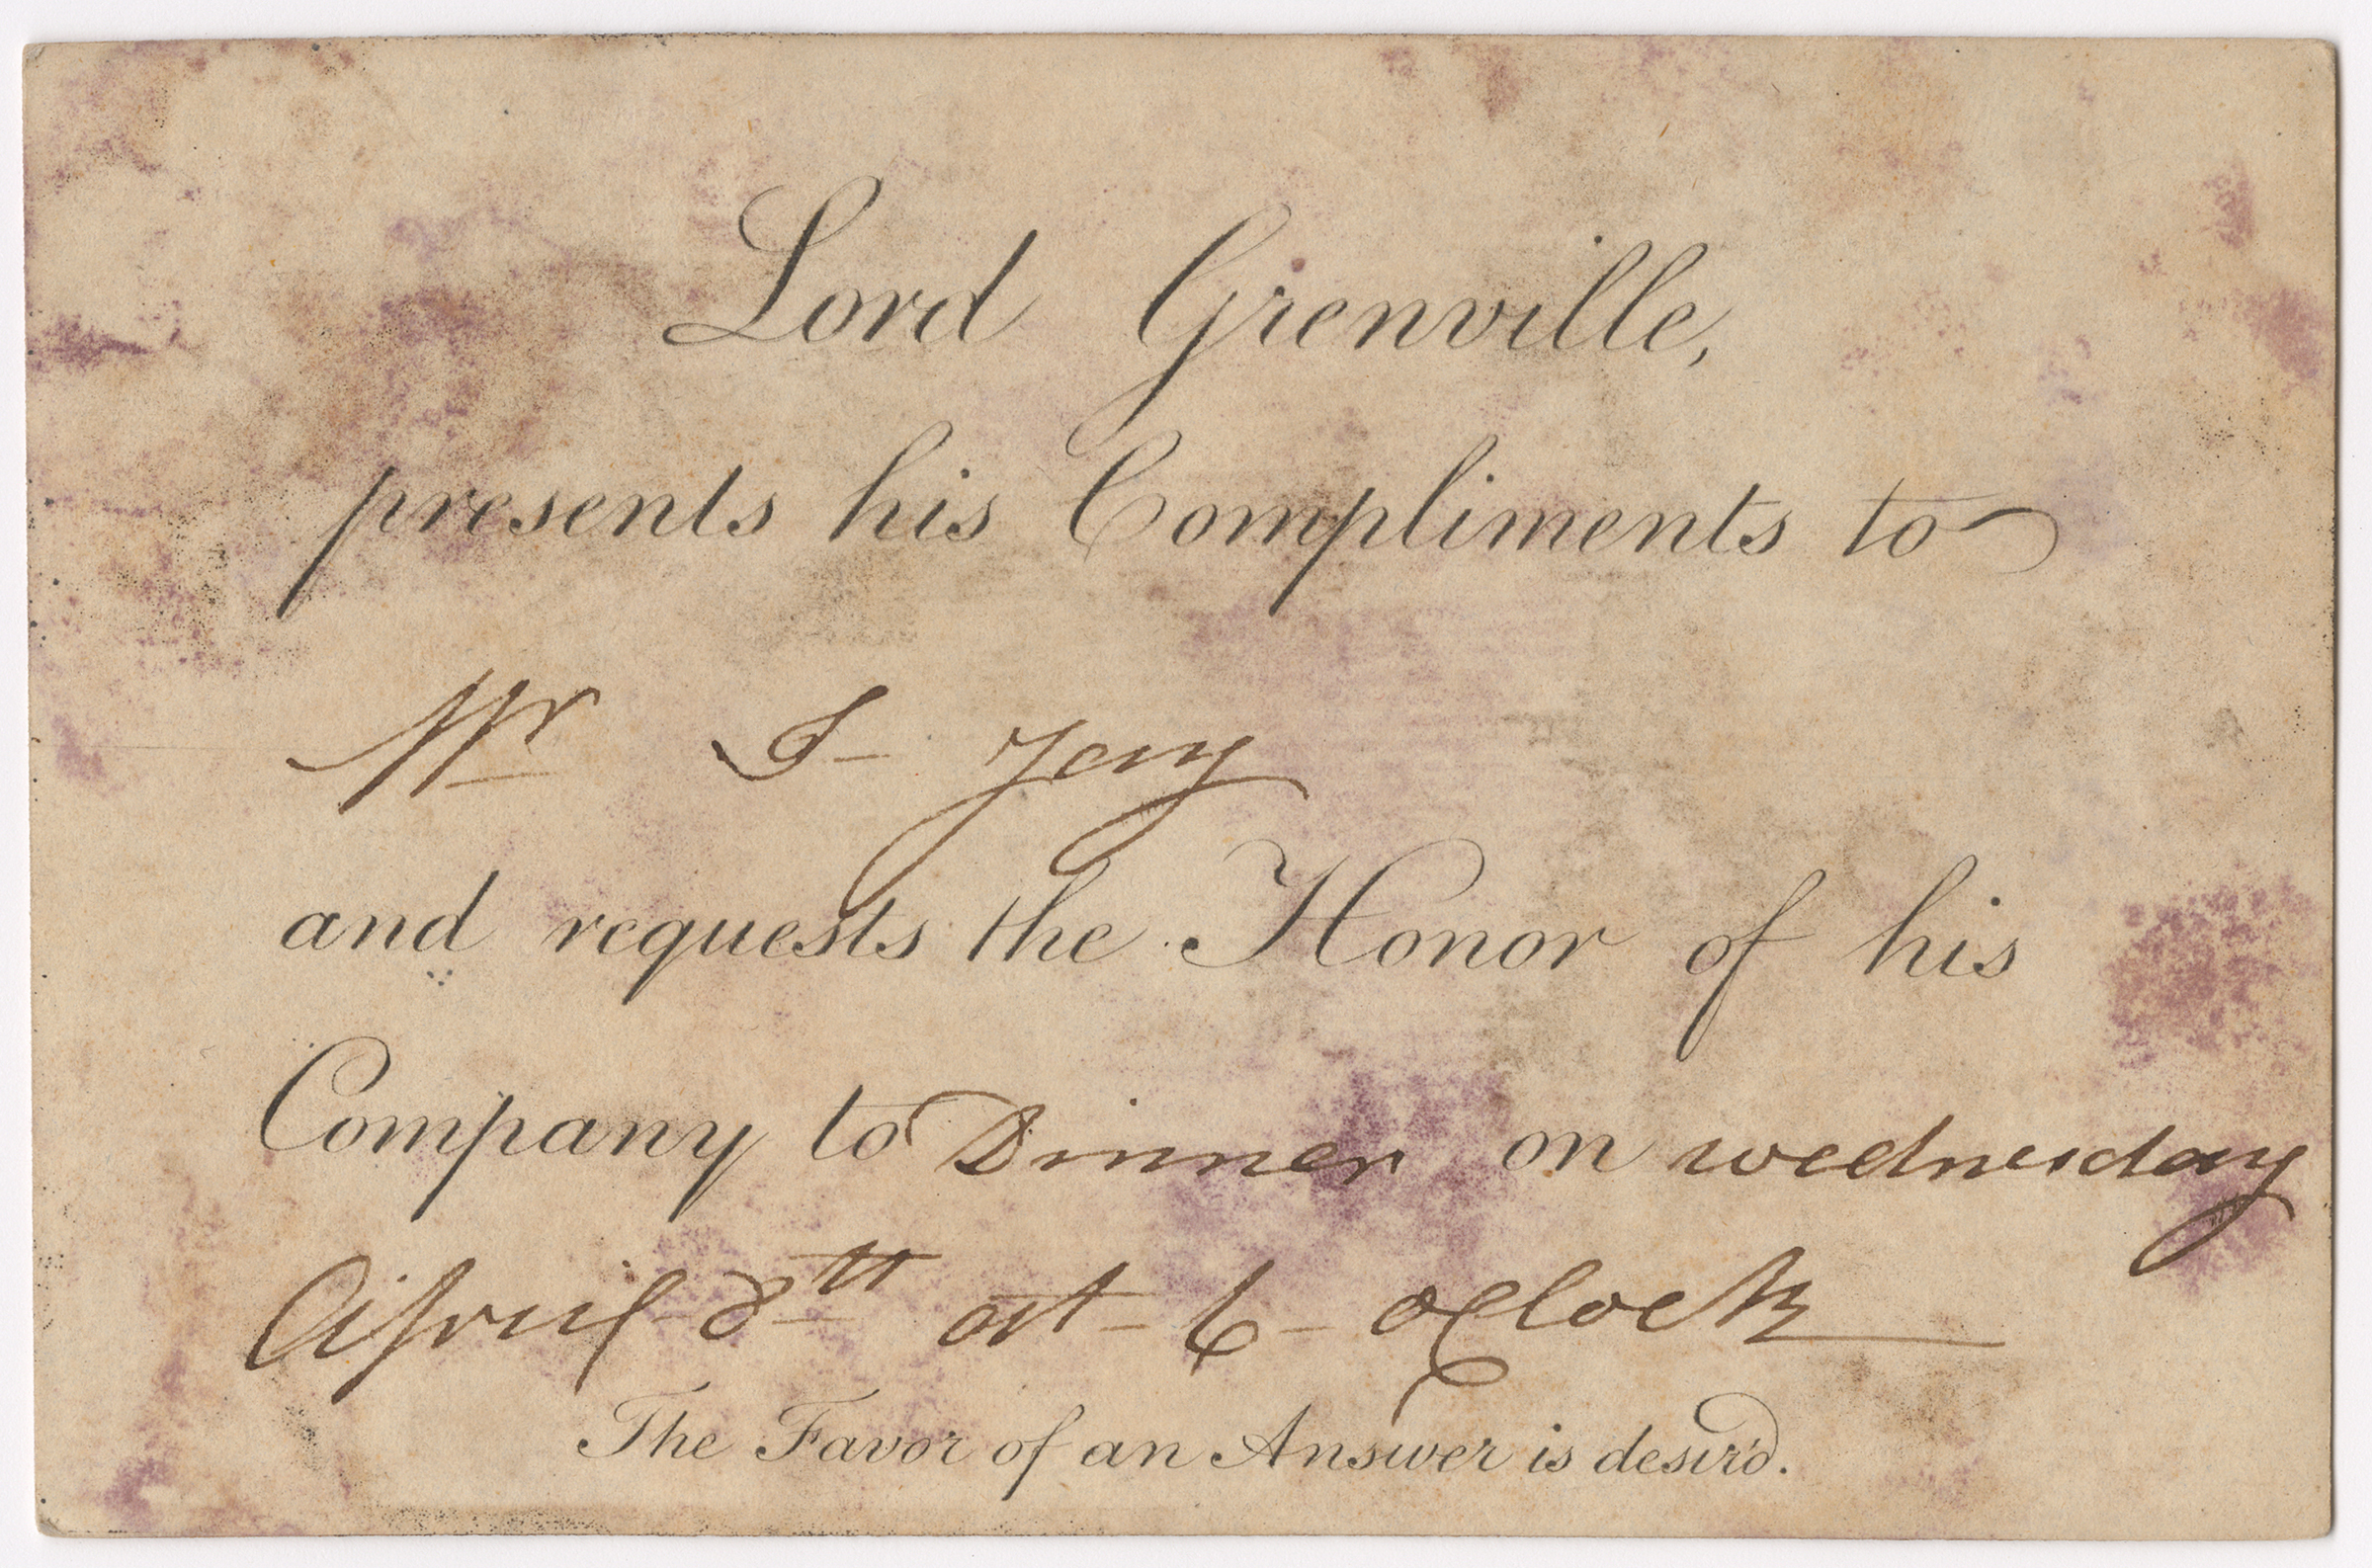 Lord Grenville Calling Card, front